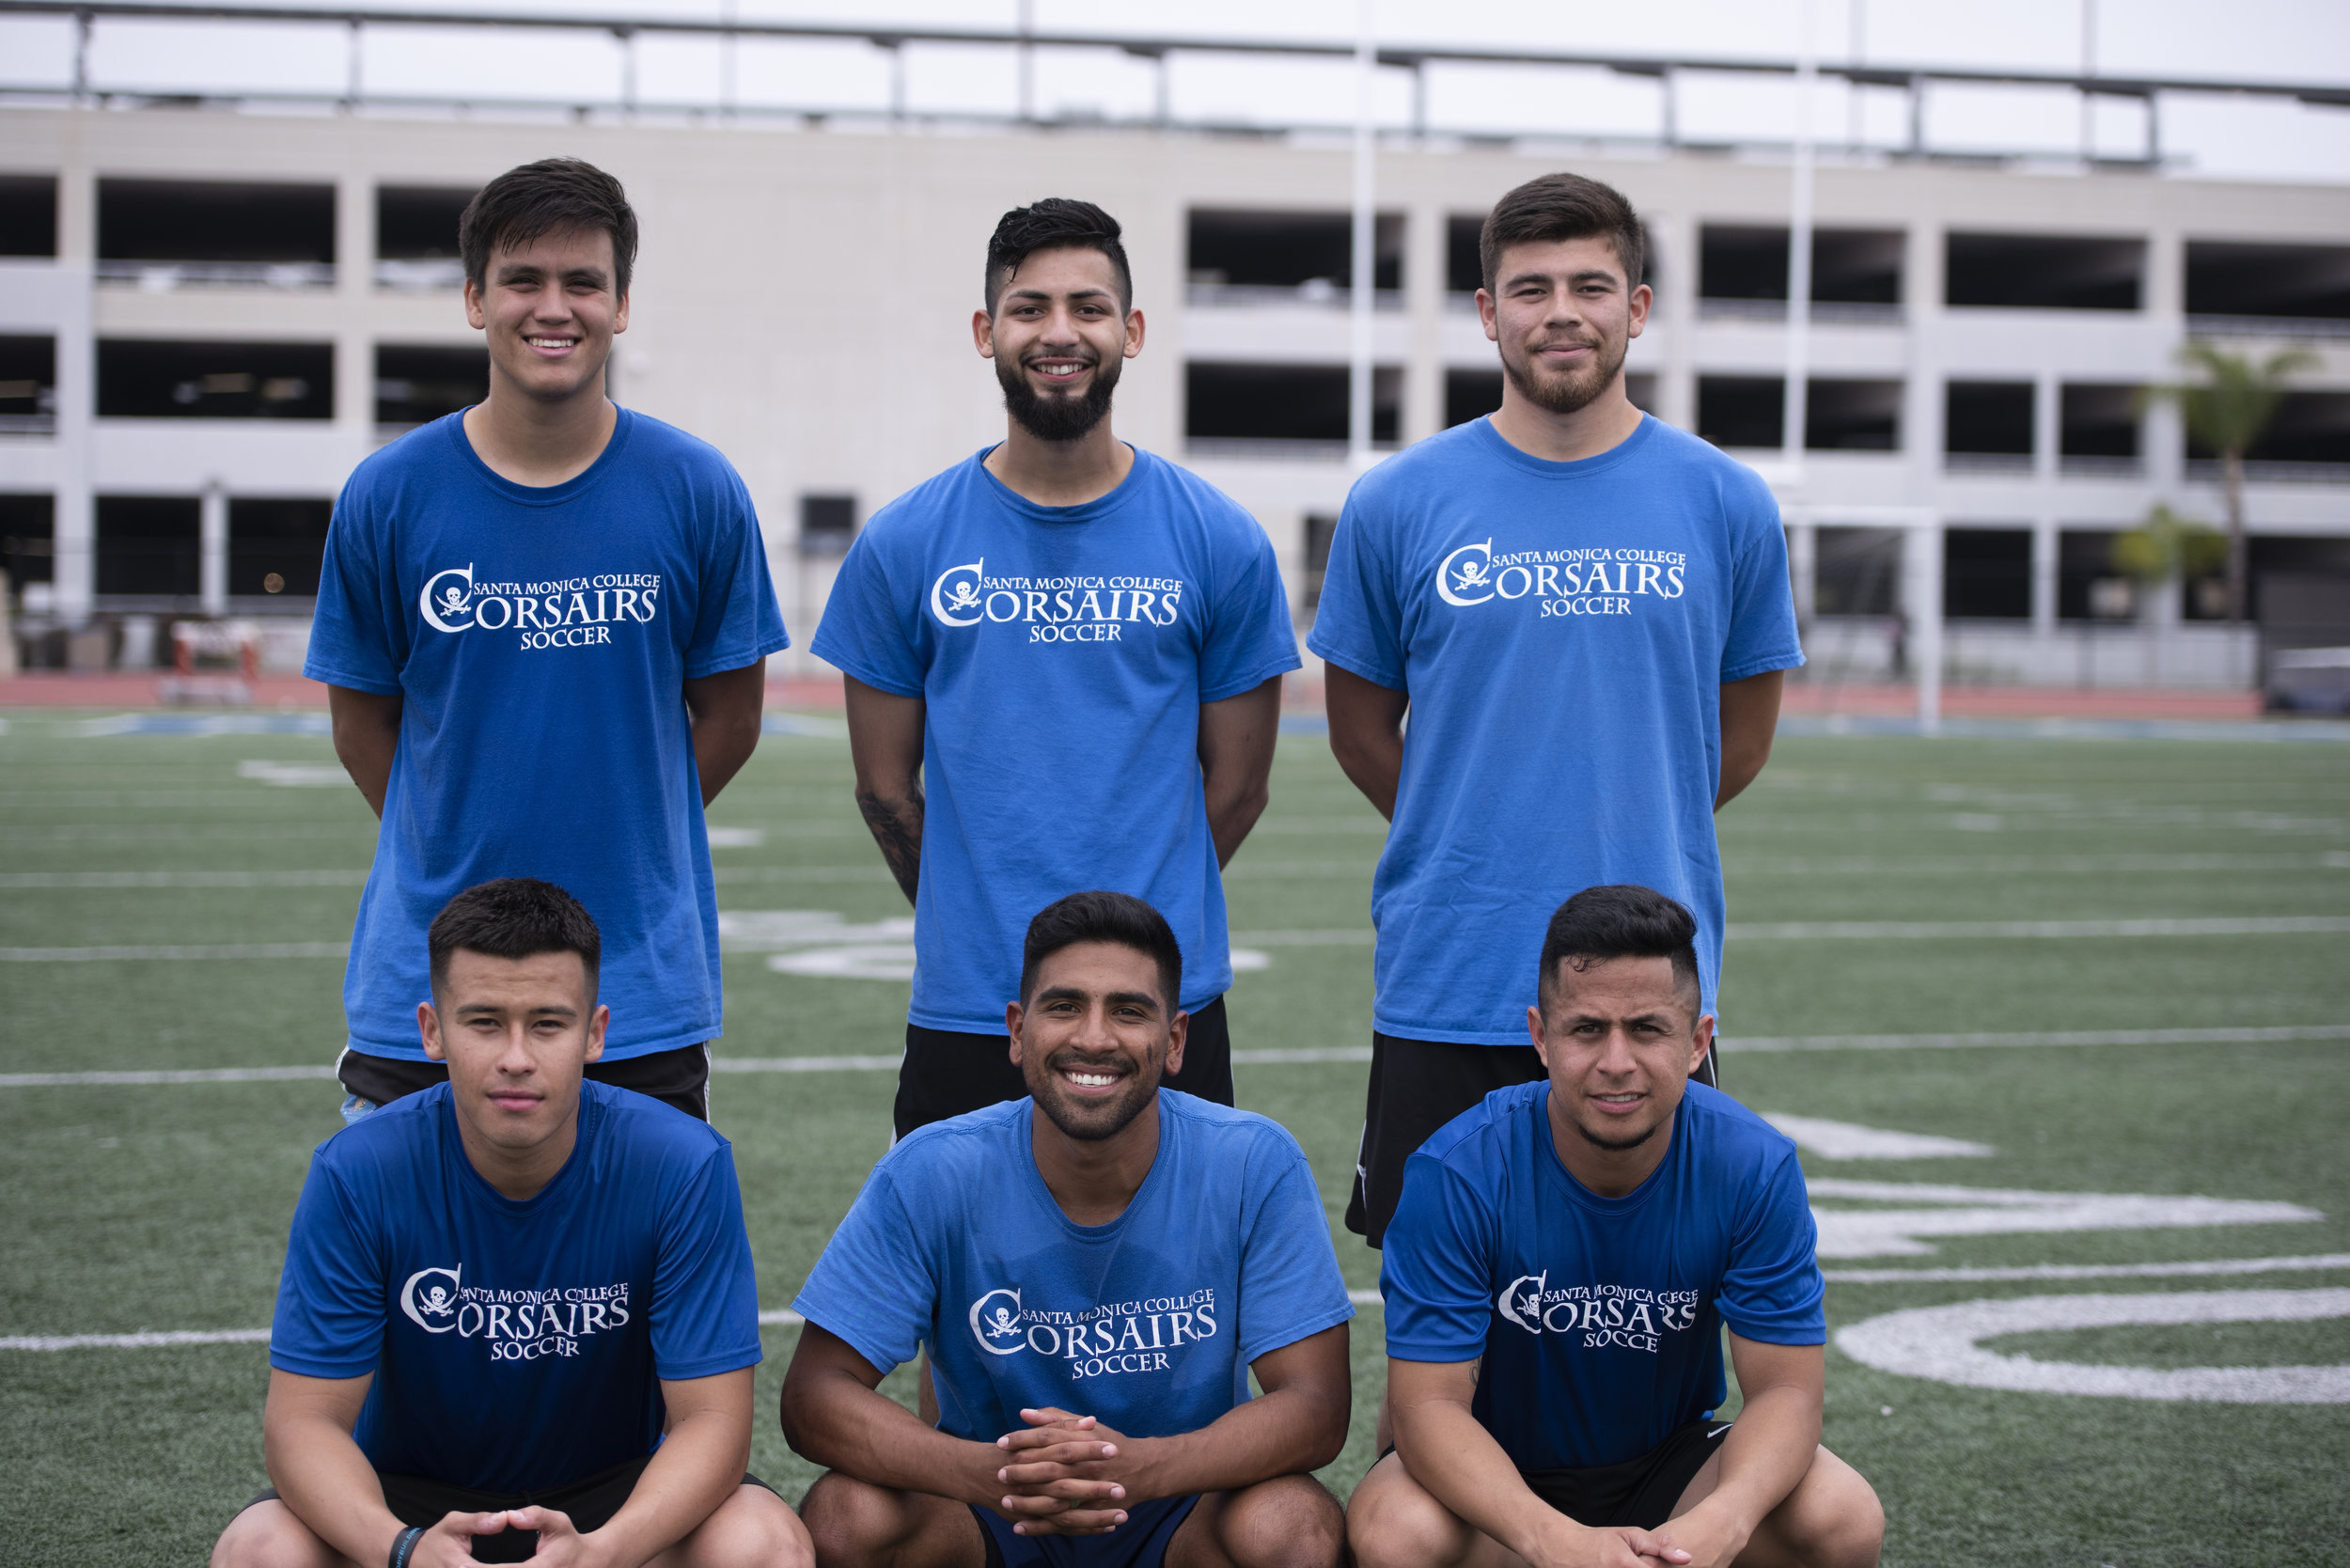 .From top to bottom: Cesar Oliva, Giancarlo Canas-Jarquin, Ruben Soria, Oscar Palacios, Narcisco Cervantes and Juan David Torres prepare to start their weekly practice on the Corsair Field, Tuesday, May 14, in Santa Monica. (Photo by Clyde Bates/Caption by Cristian Vasquez/The Corsair)